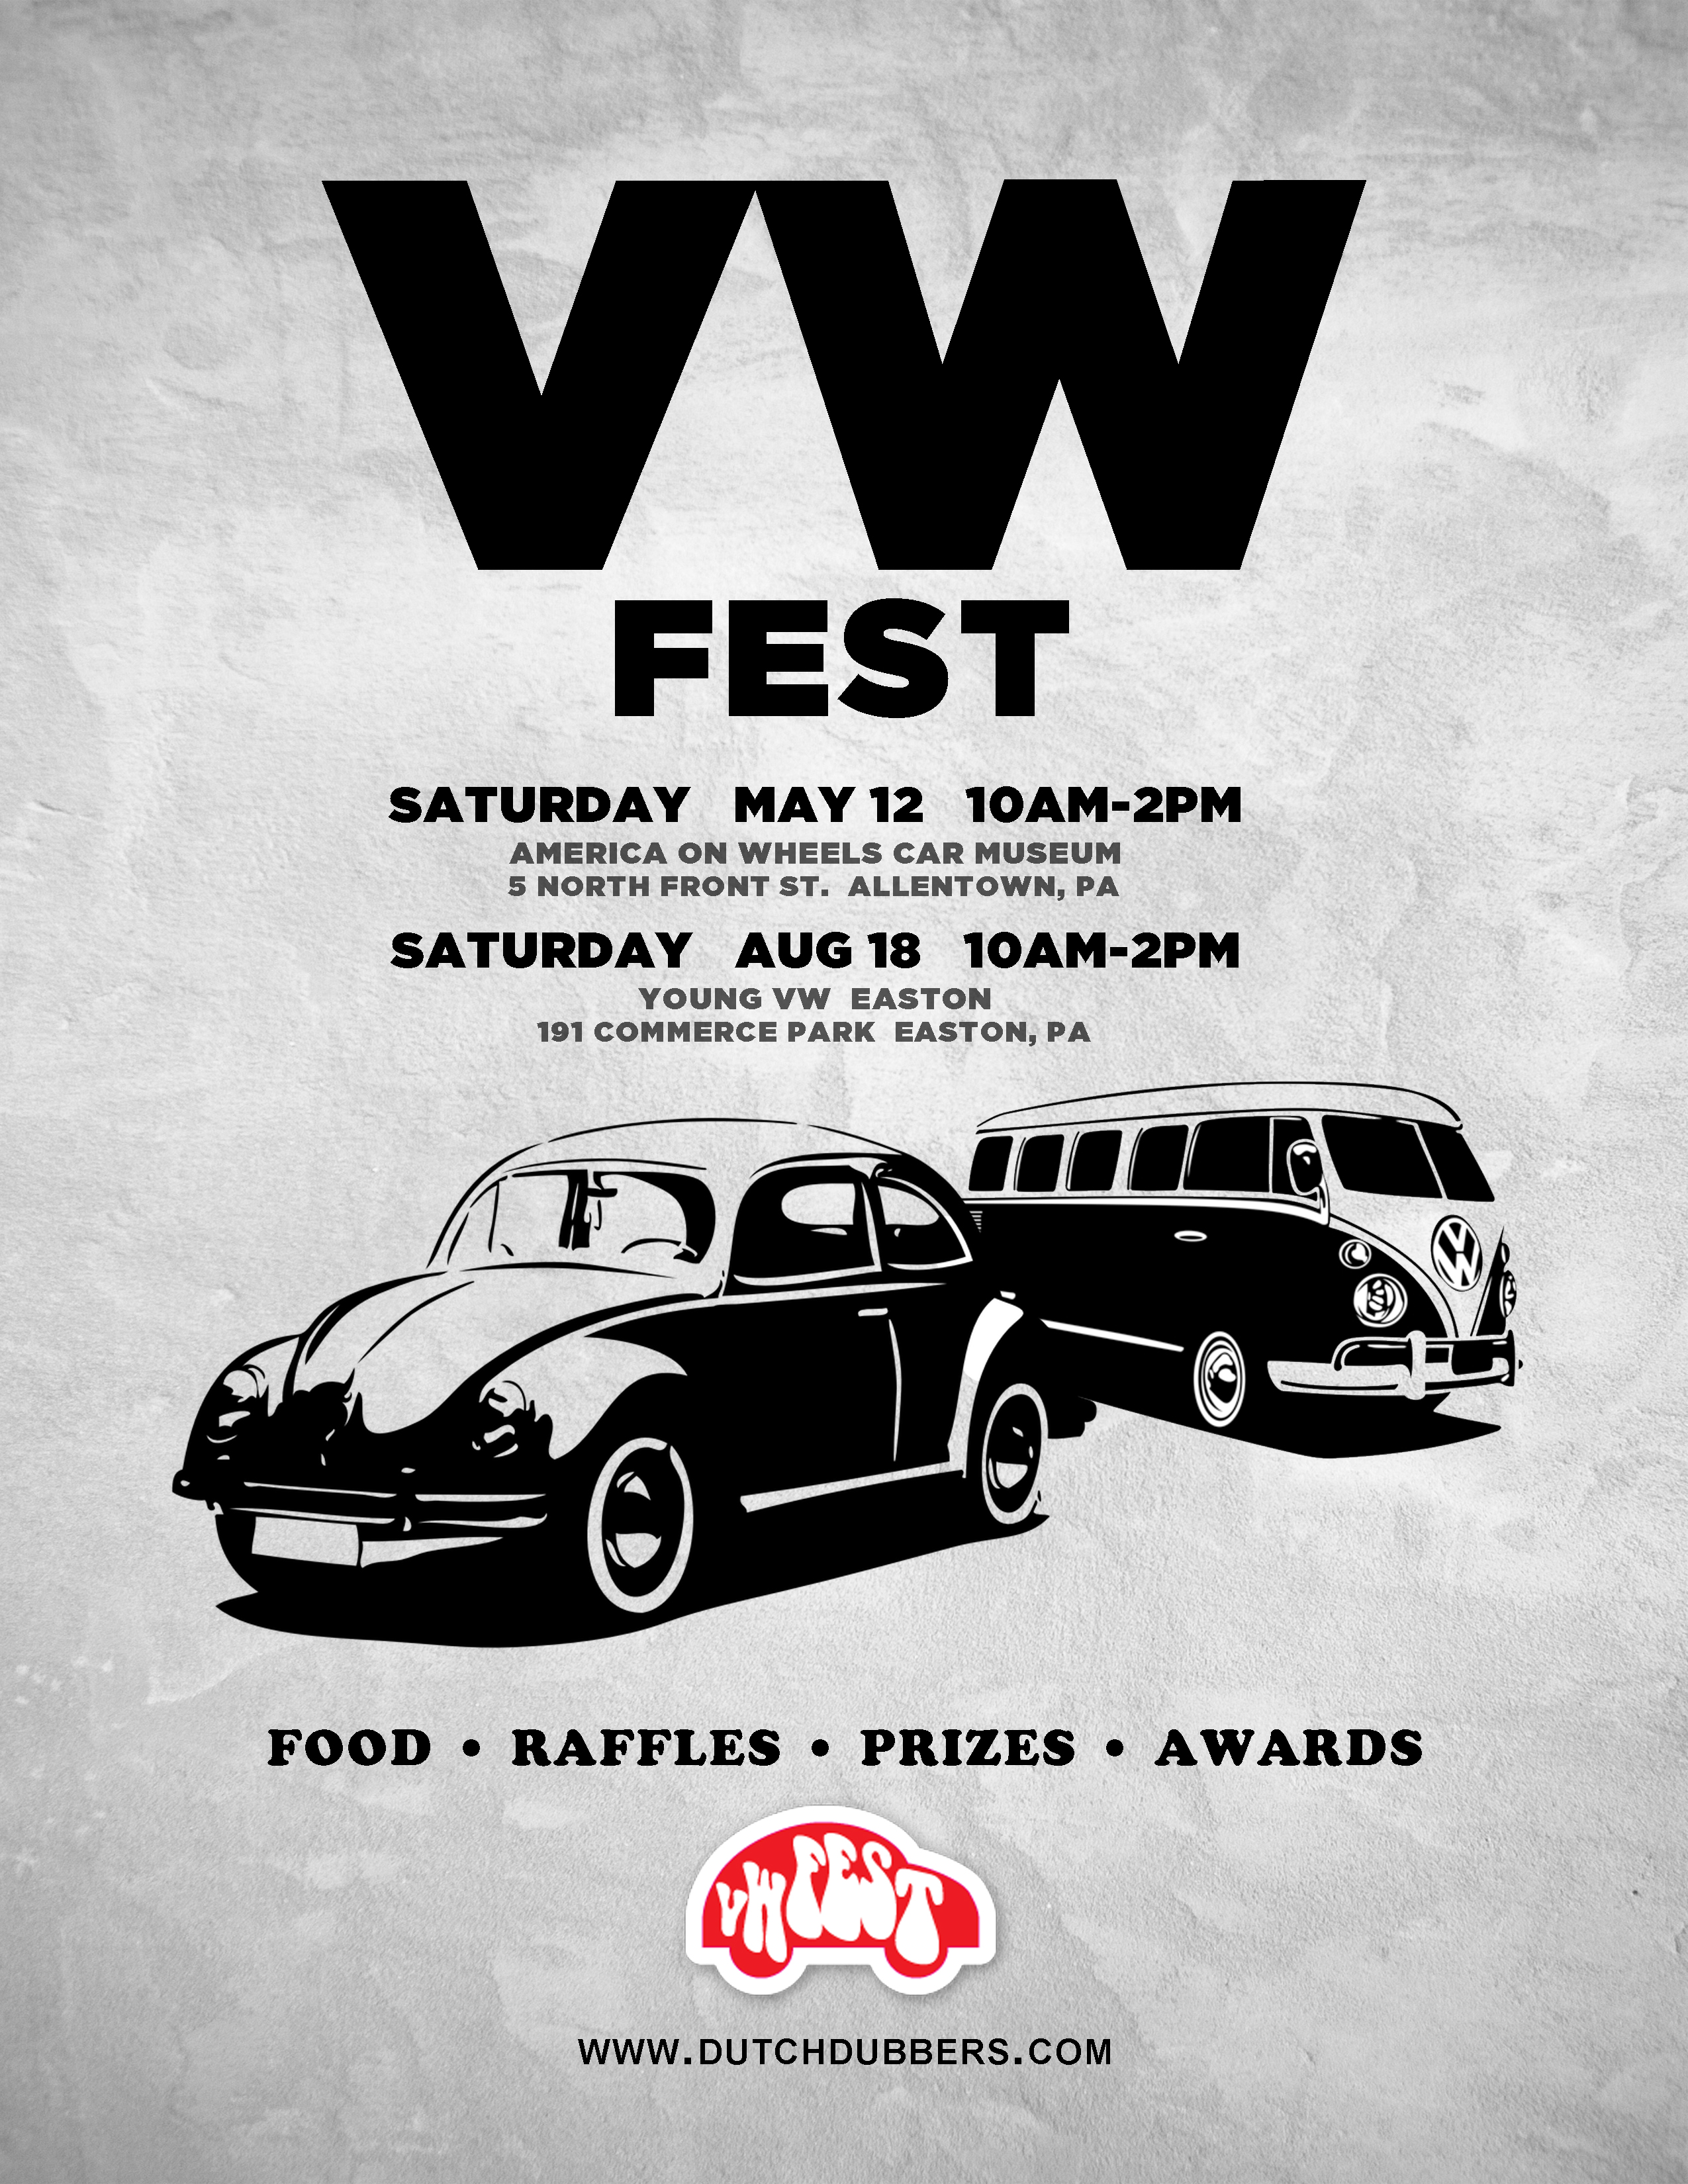 VW Fest at America On Wheels